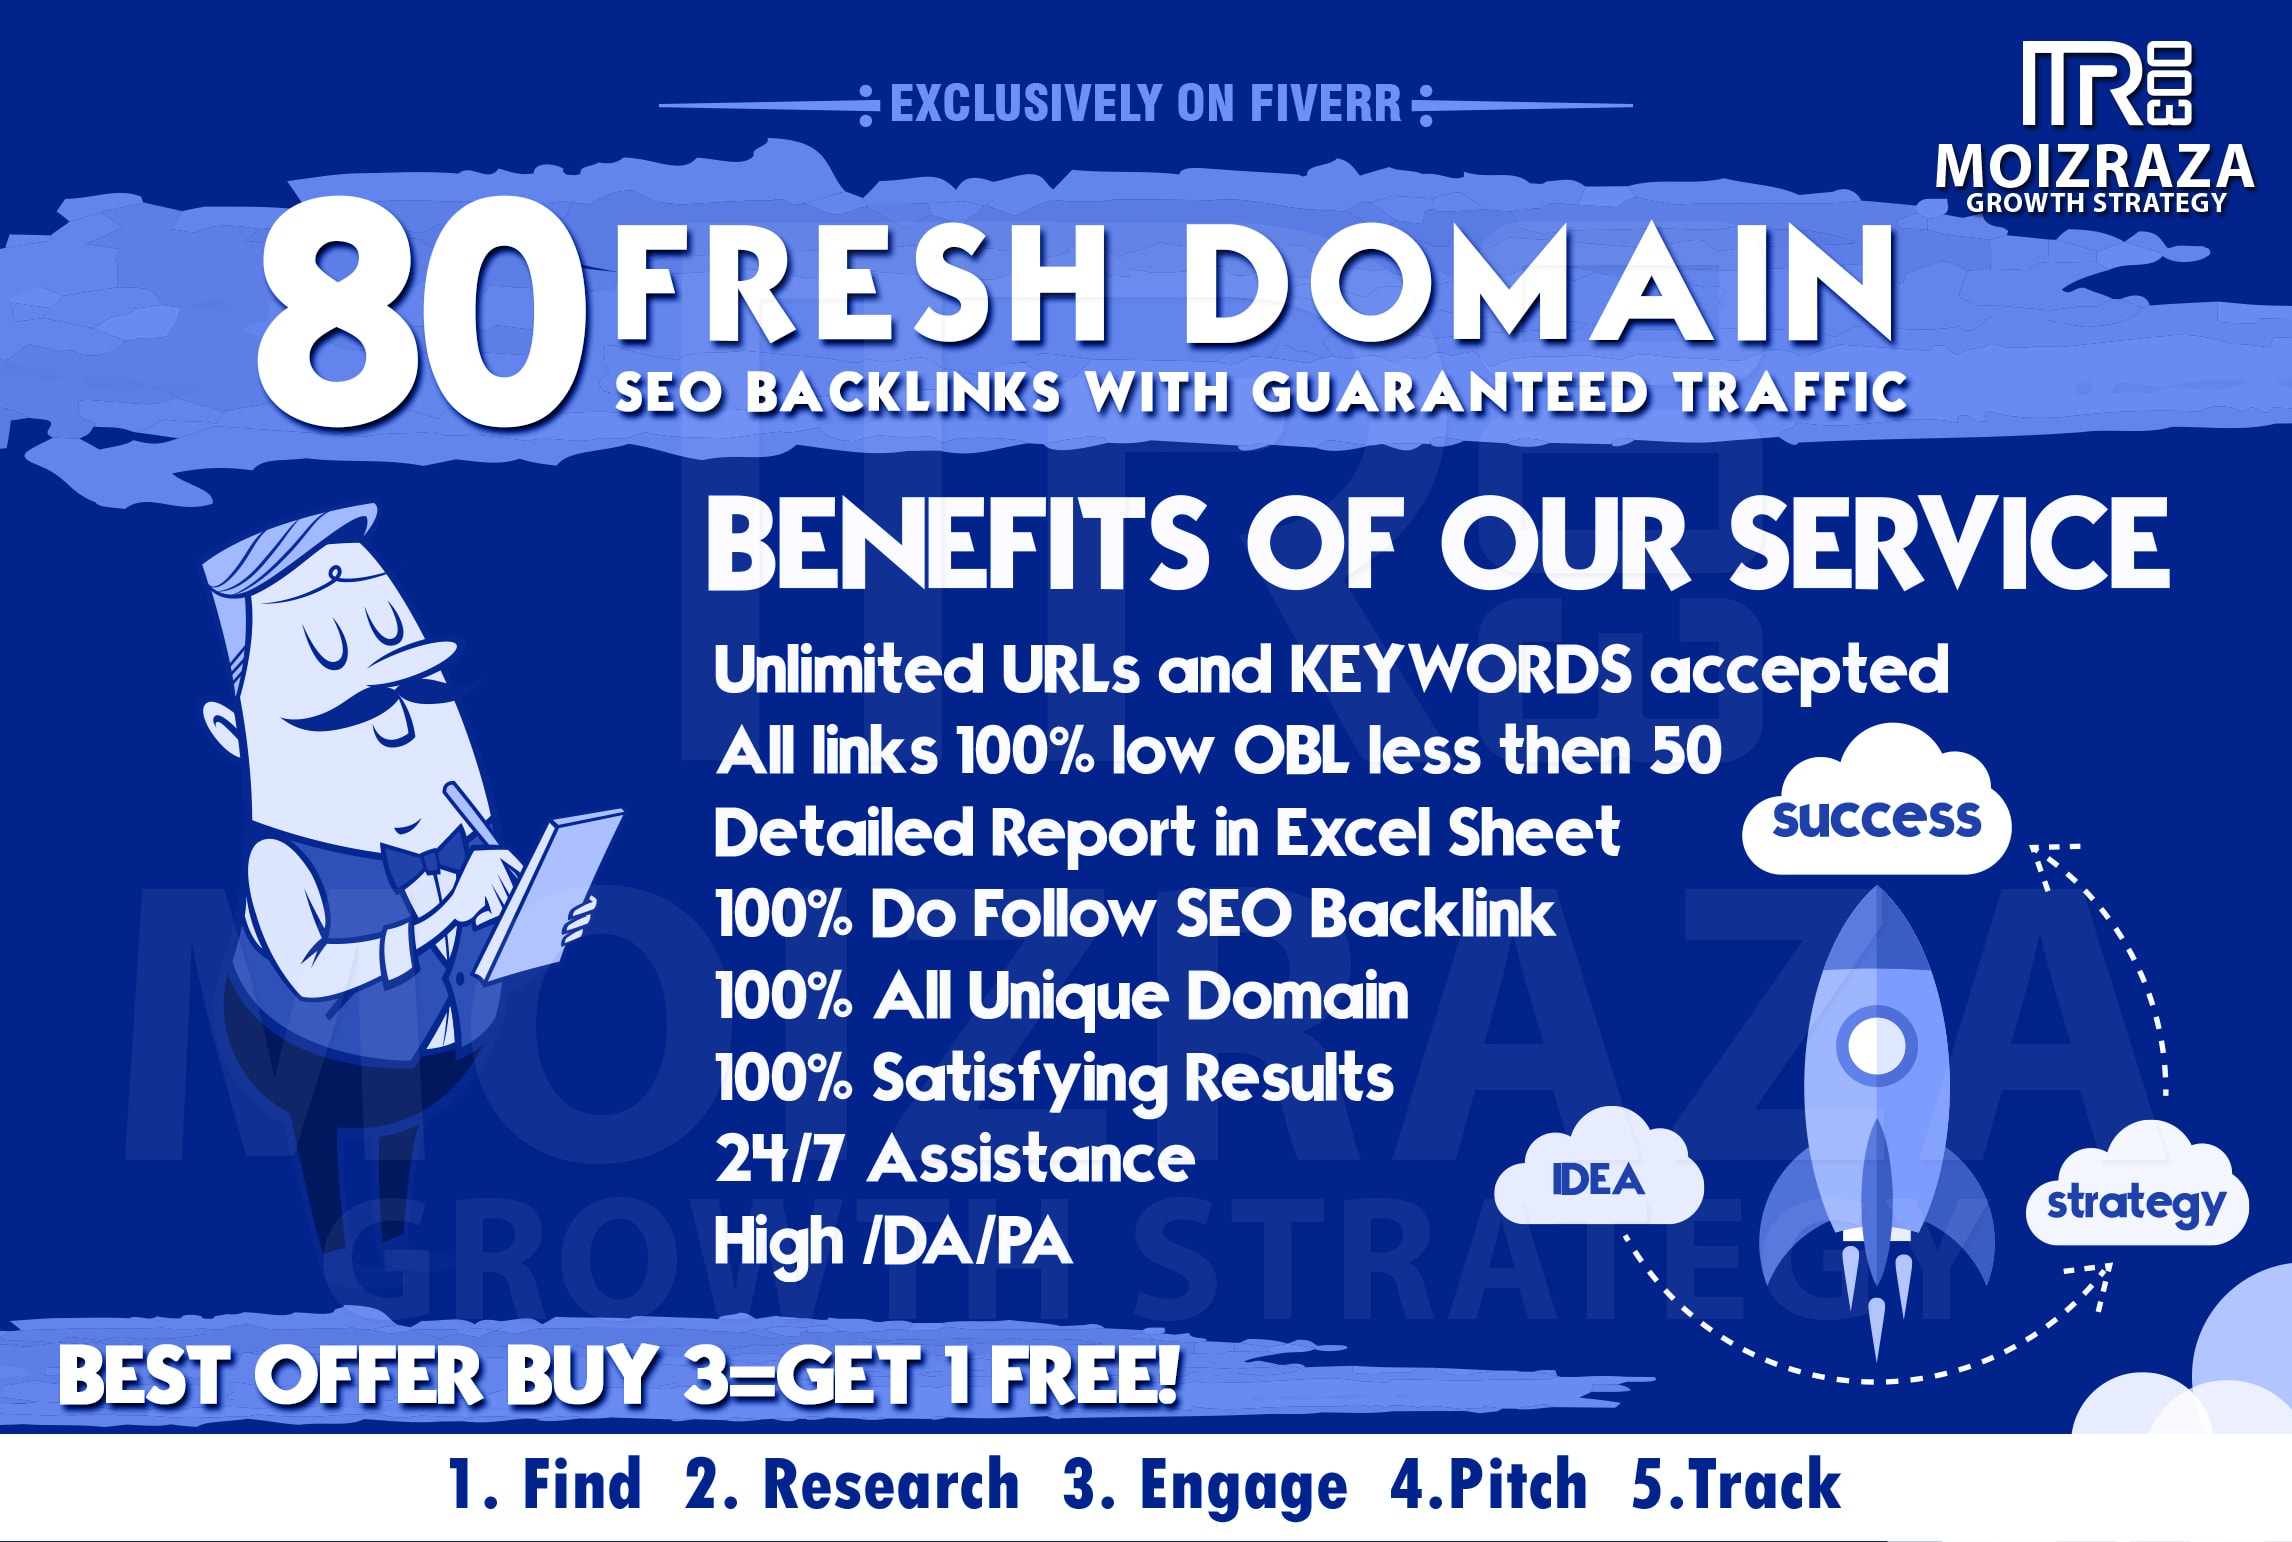 build 80 fresh domain SEO backlinks with guaranteed traffic